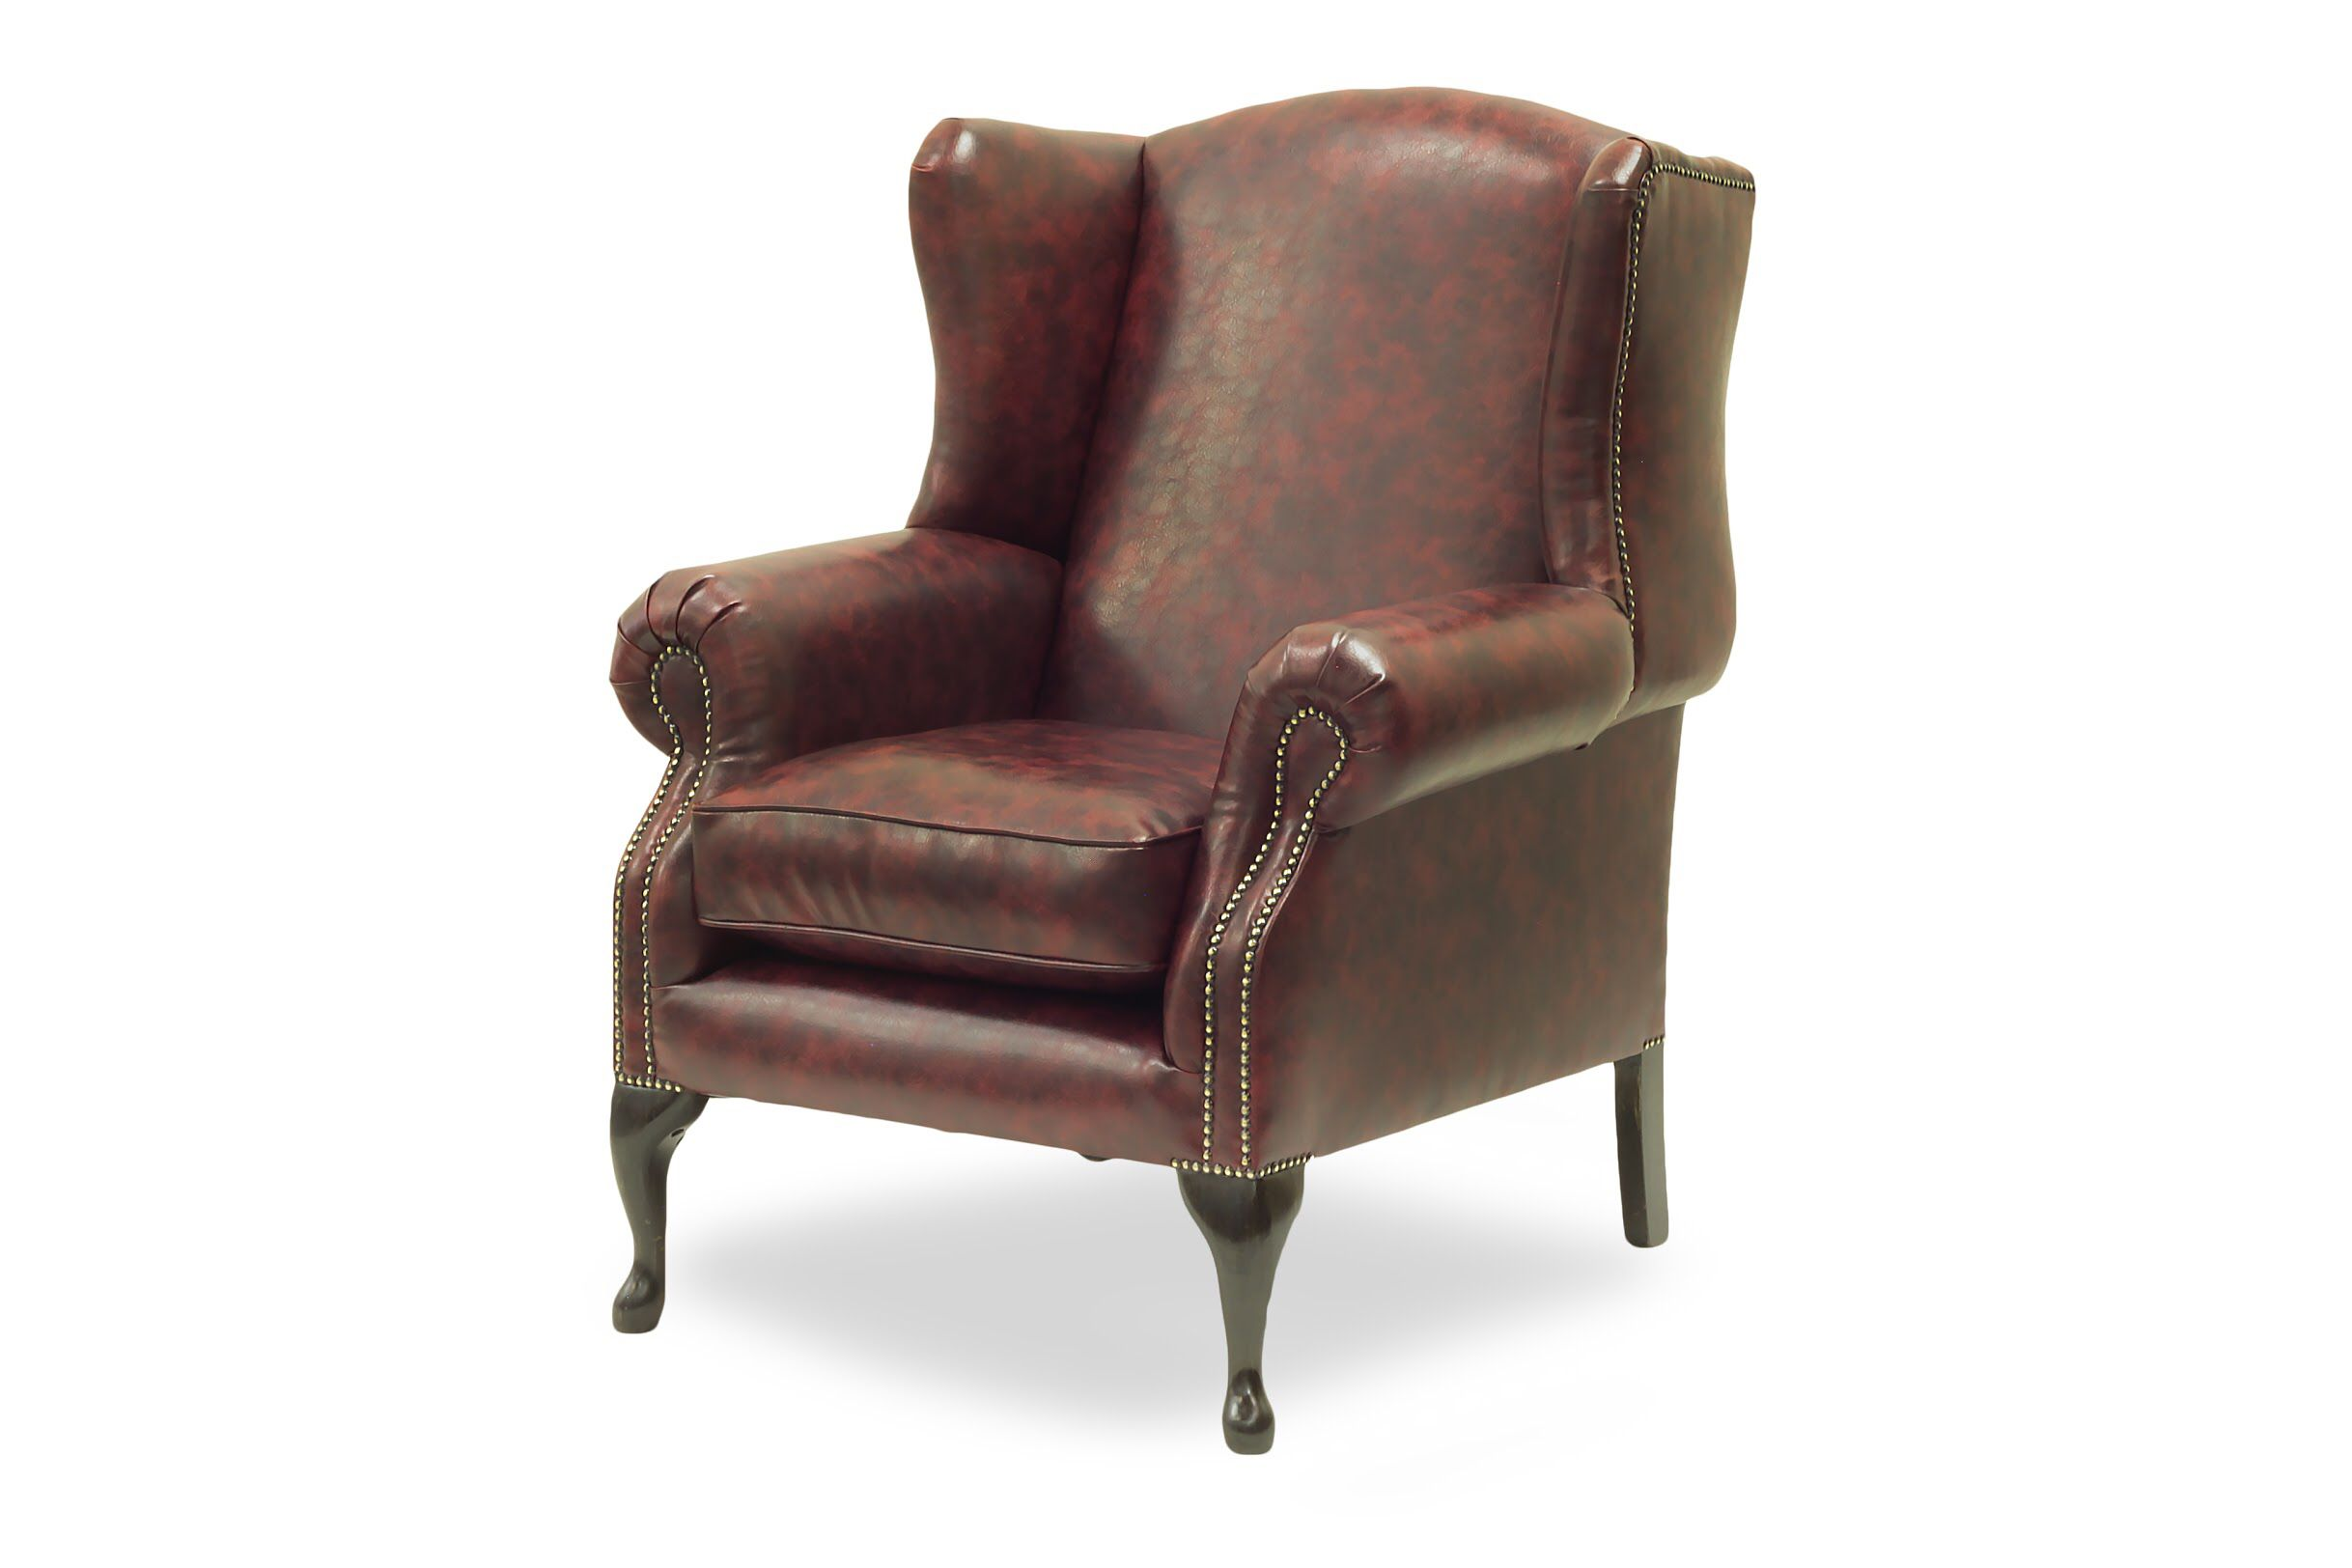 Sit Back And Relax In This Bespoke Wingchair In Yarwoodleather Churchill Faux Leather Dontfollowtheherd Chaiselongu Chair Chair And Ottoman Furniture Maker